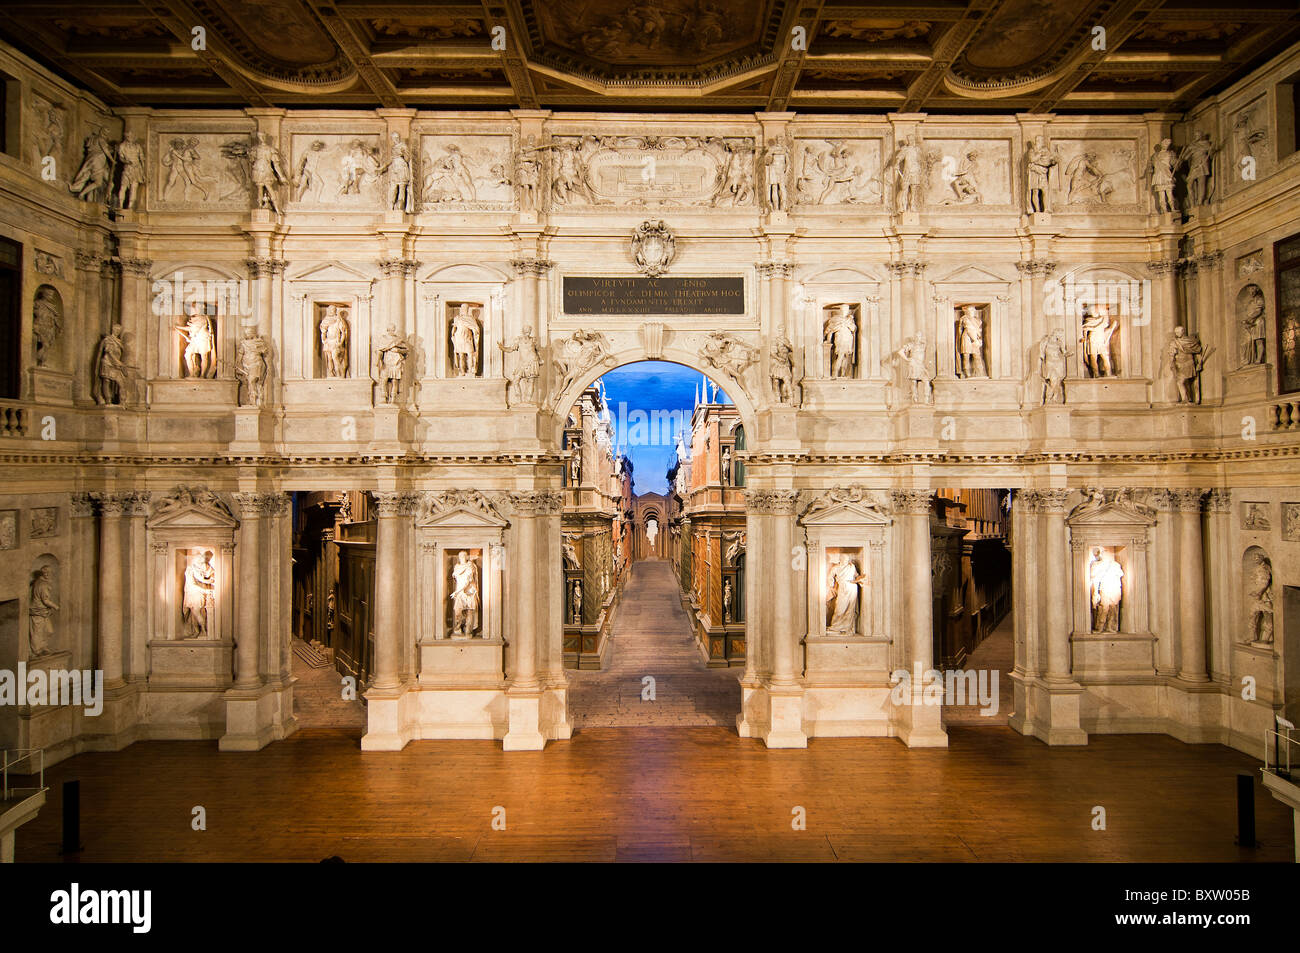 View of the three-dimensional stage of Teatro Olimpico or Olympic Theatre designed by architect Andrea Palladio, - Stock Image